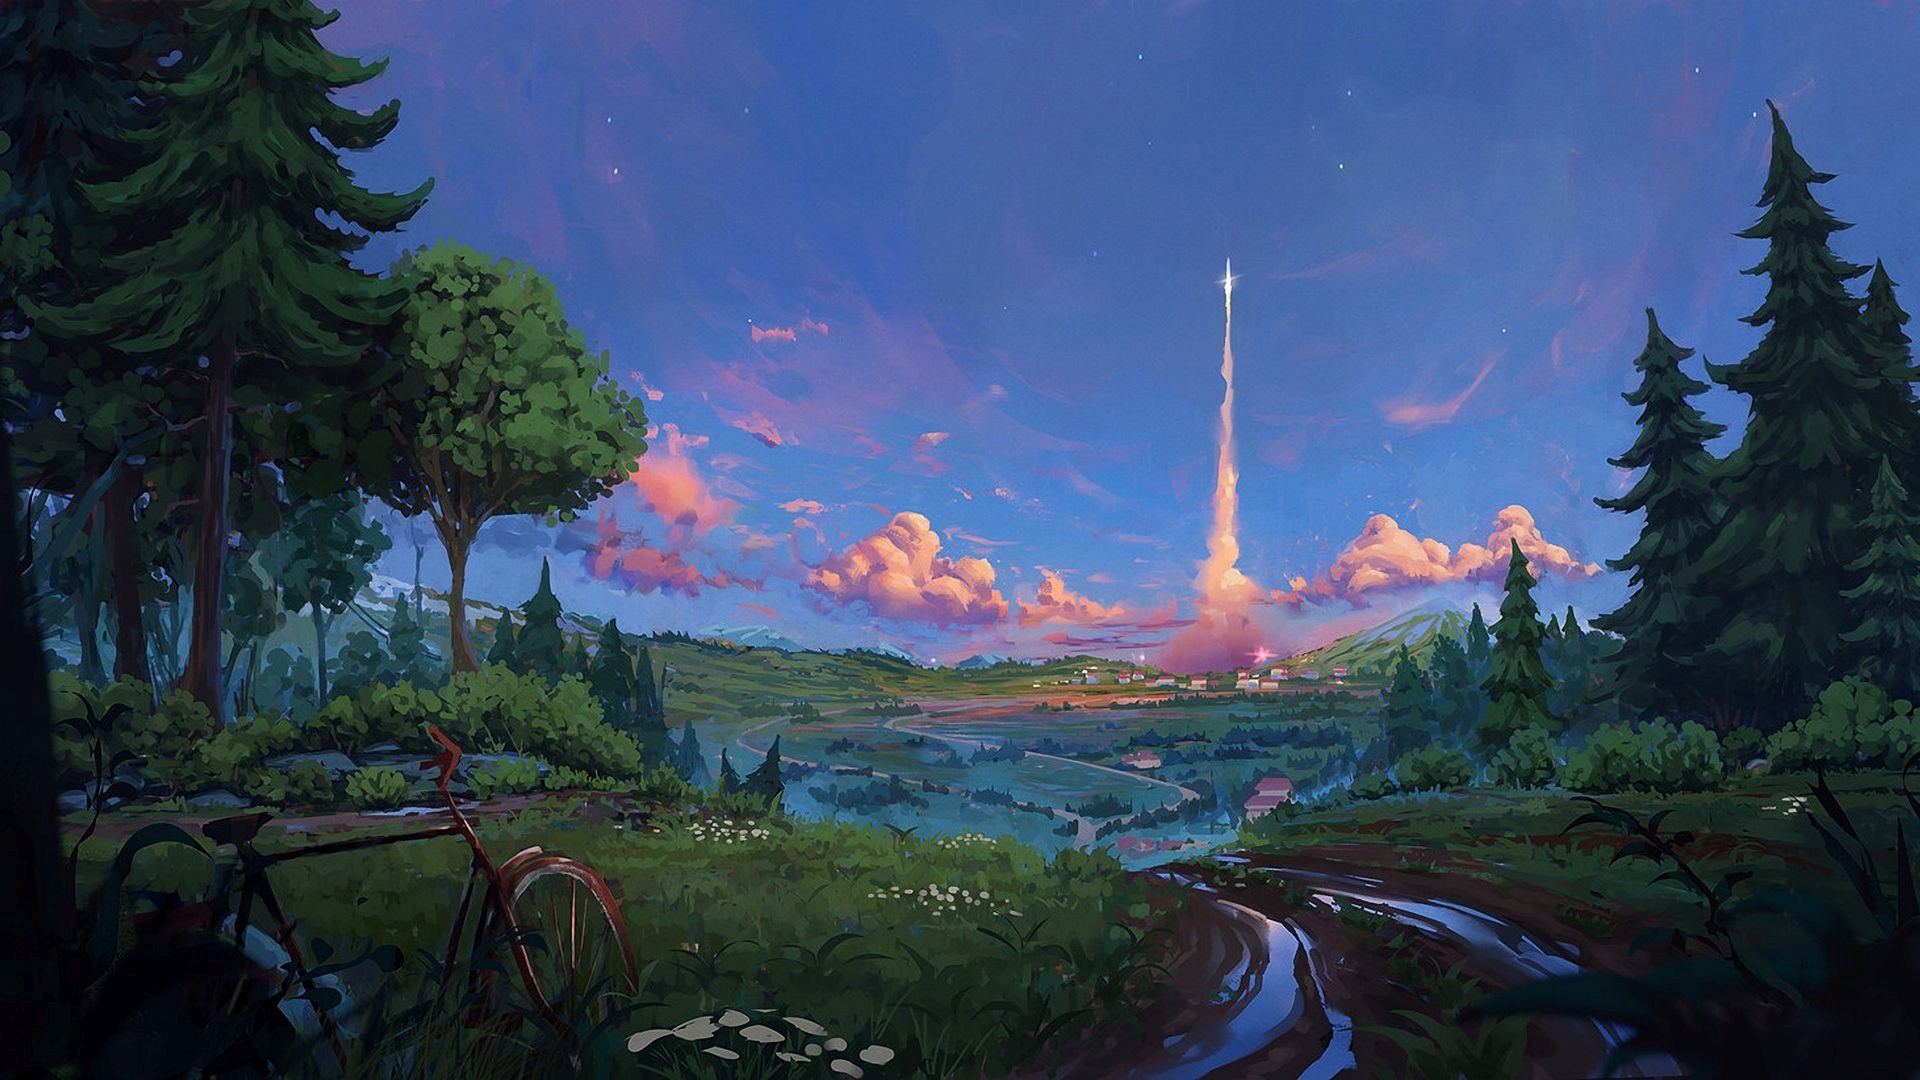 Anime Landscape With Clouds laptop wallpaper